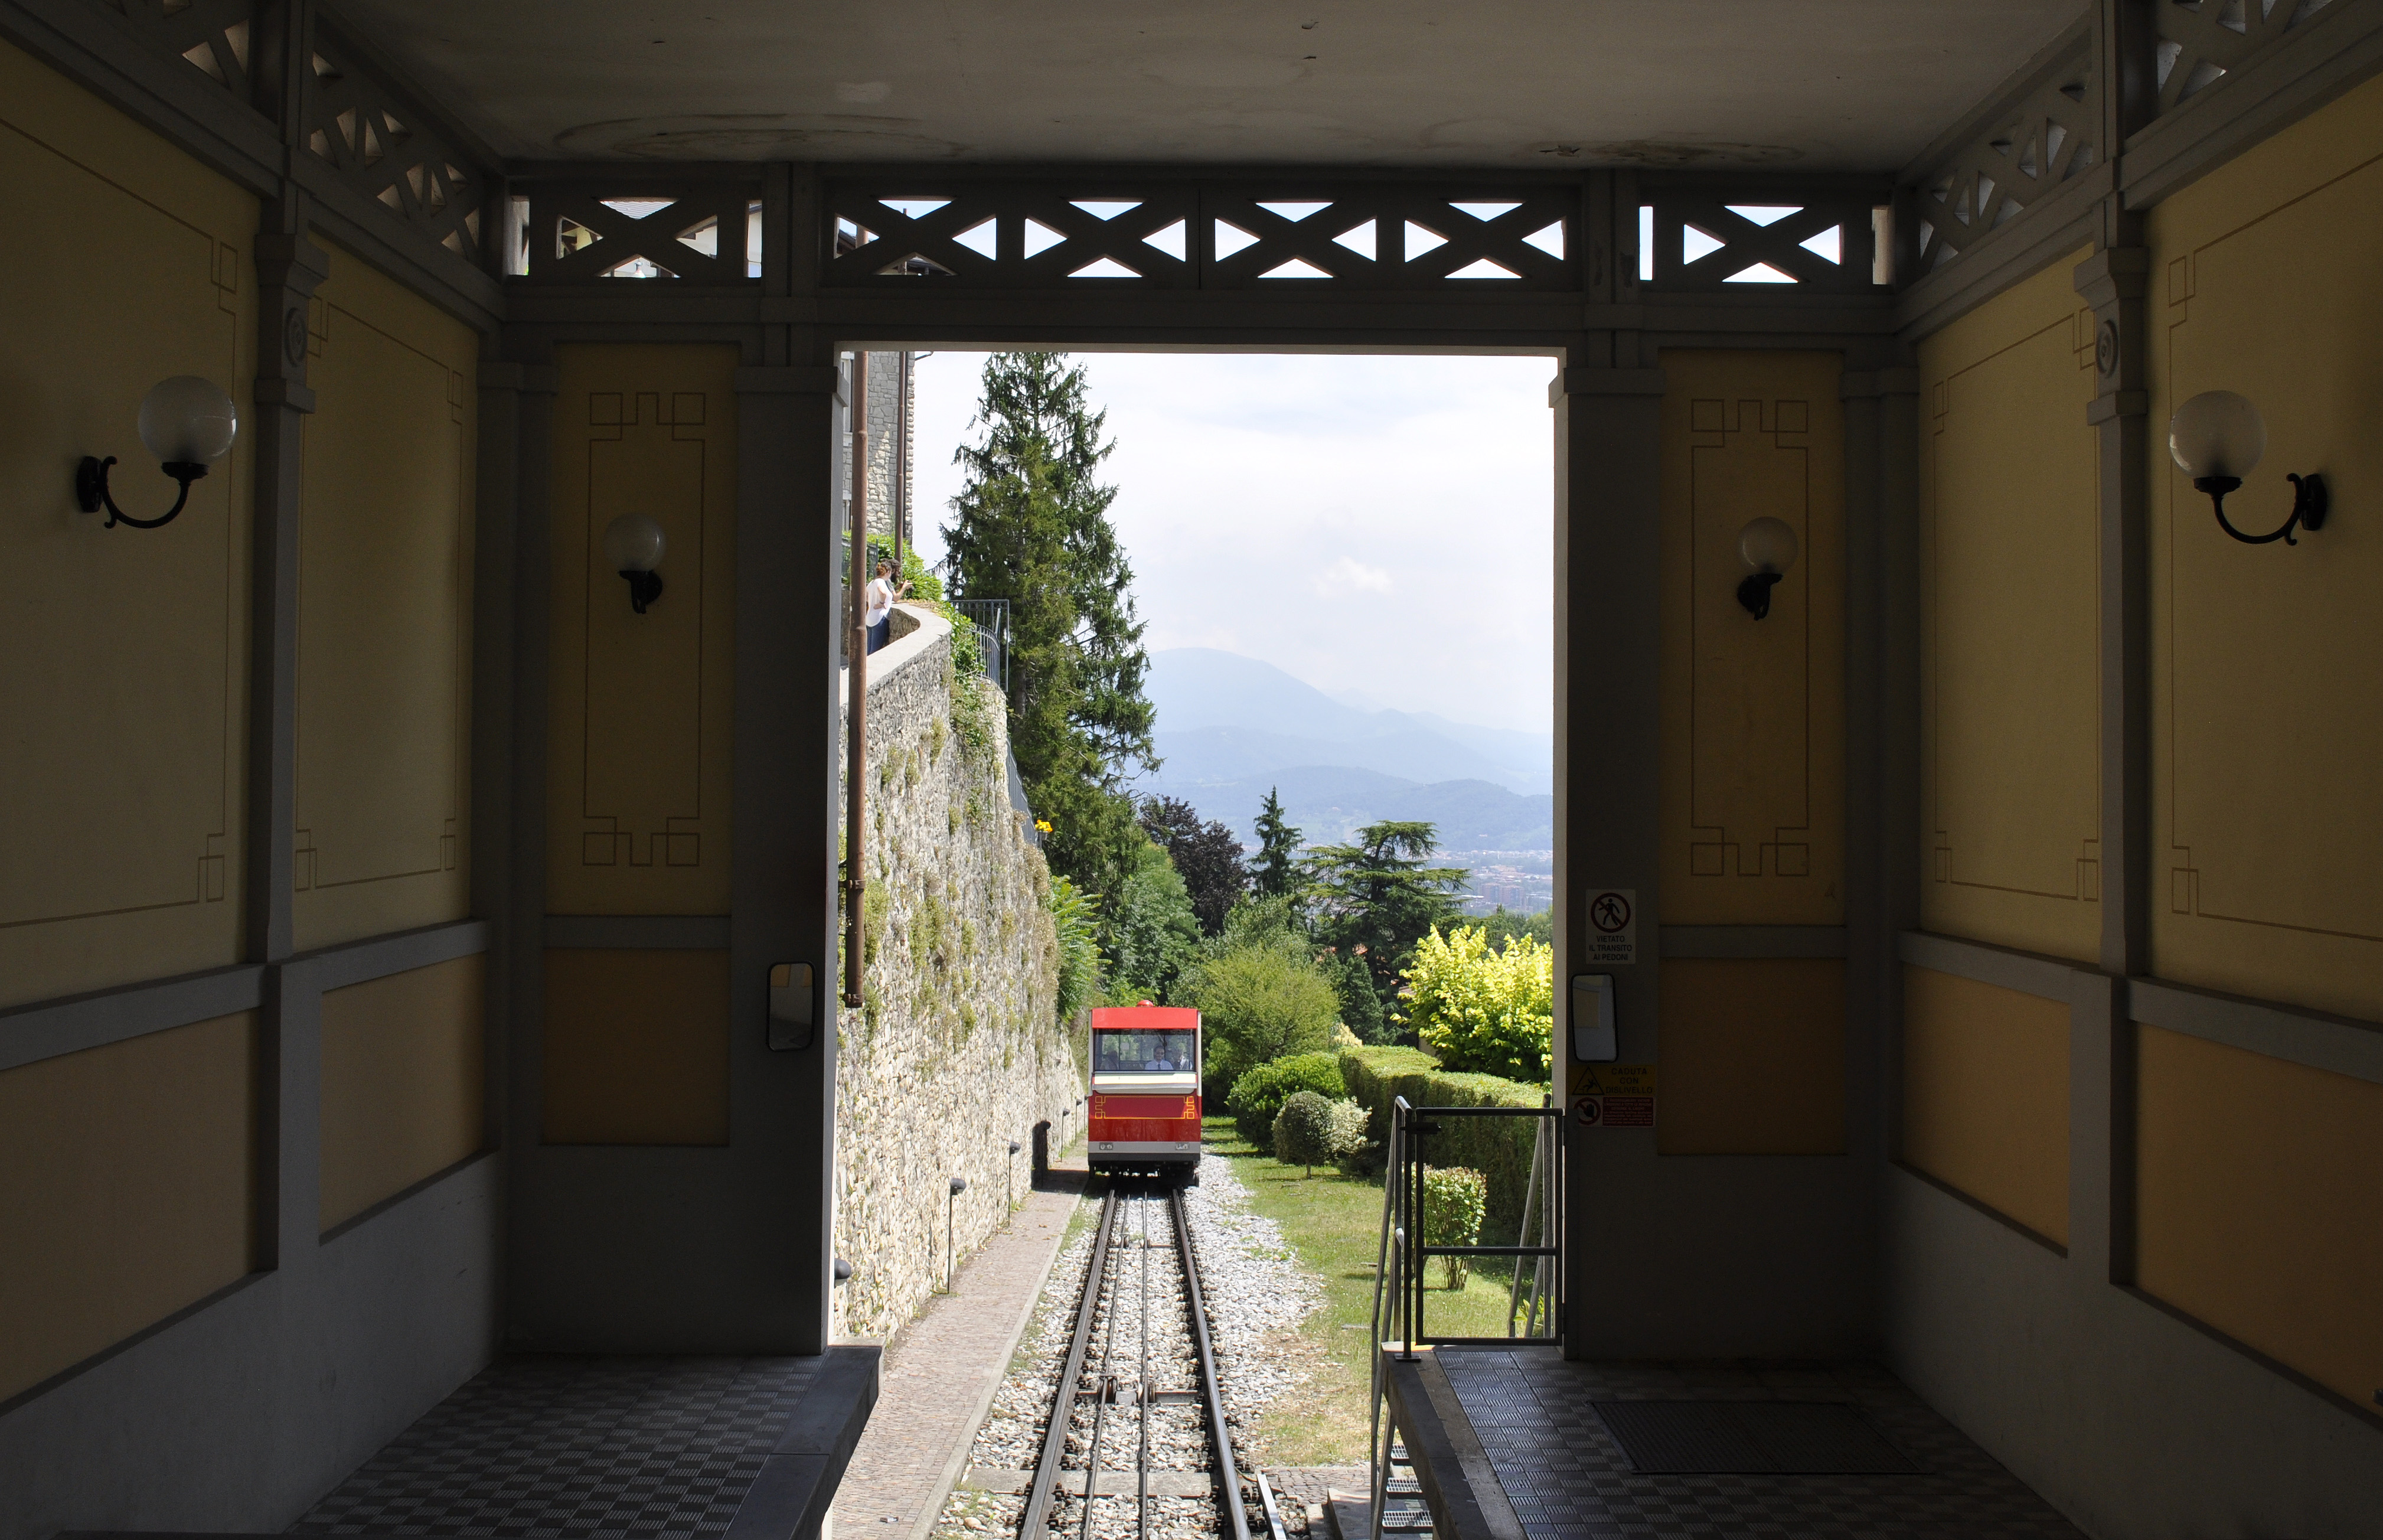 Bergamo: Top Things To See and Do